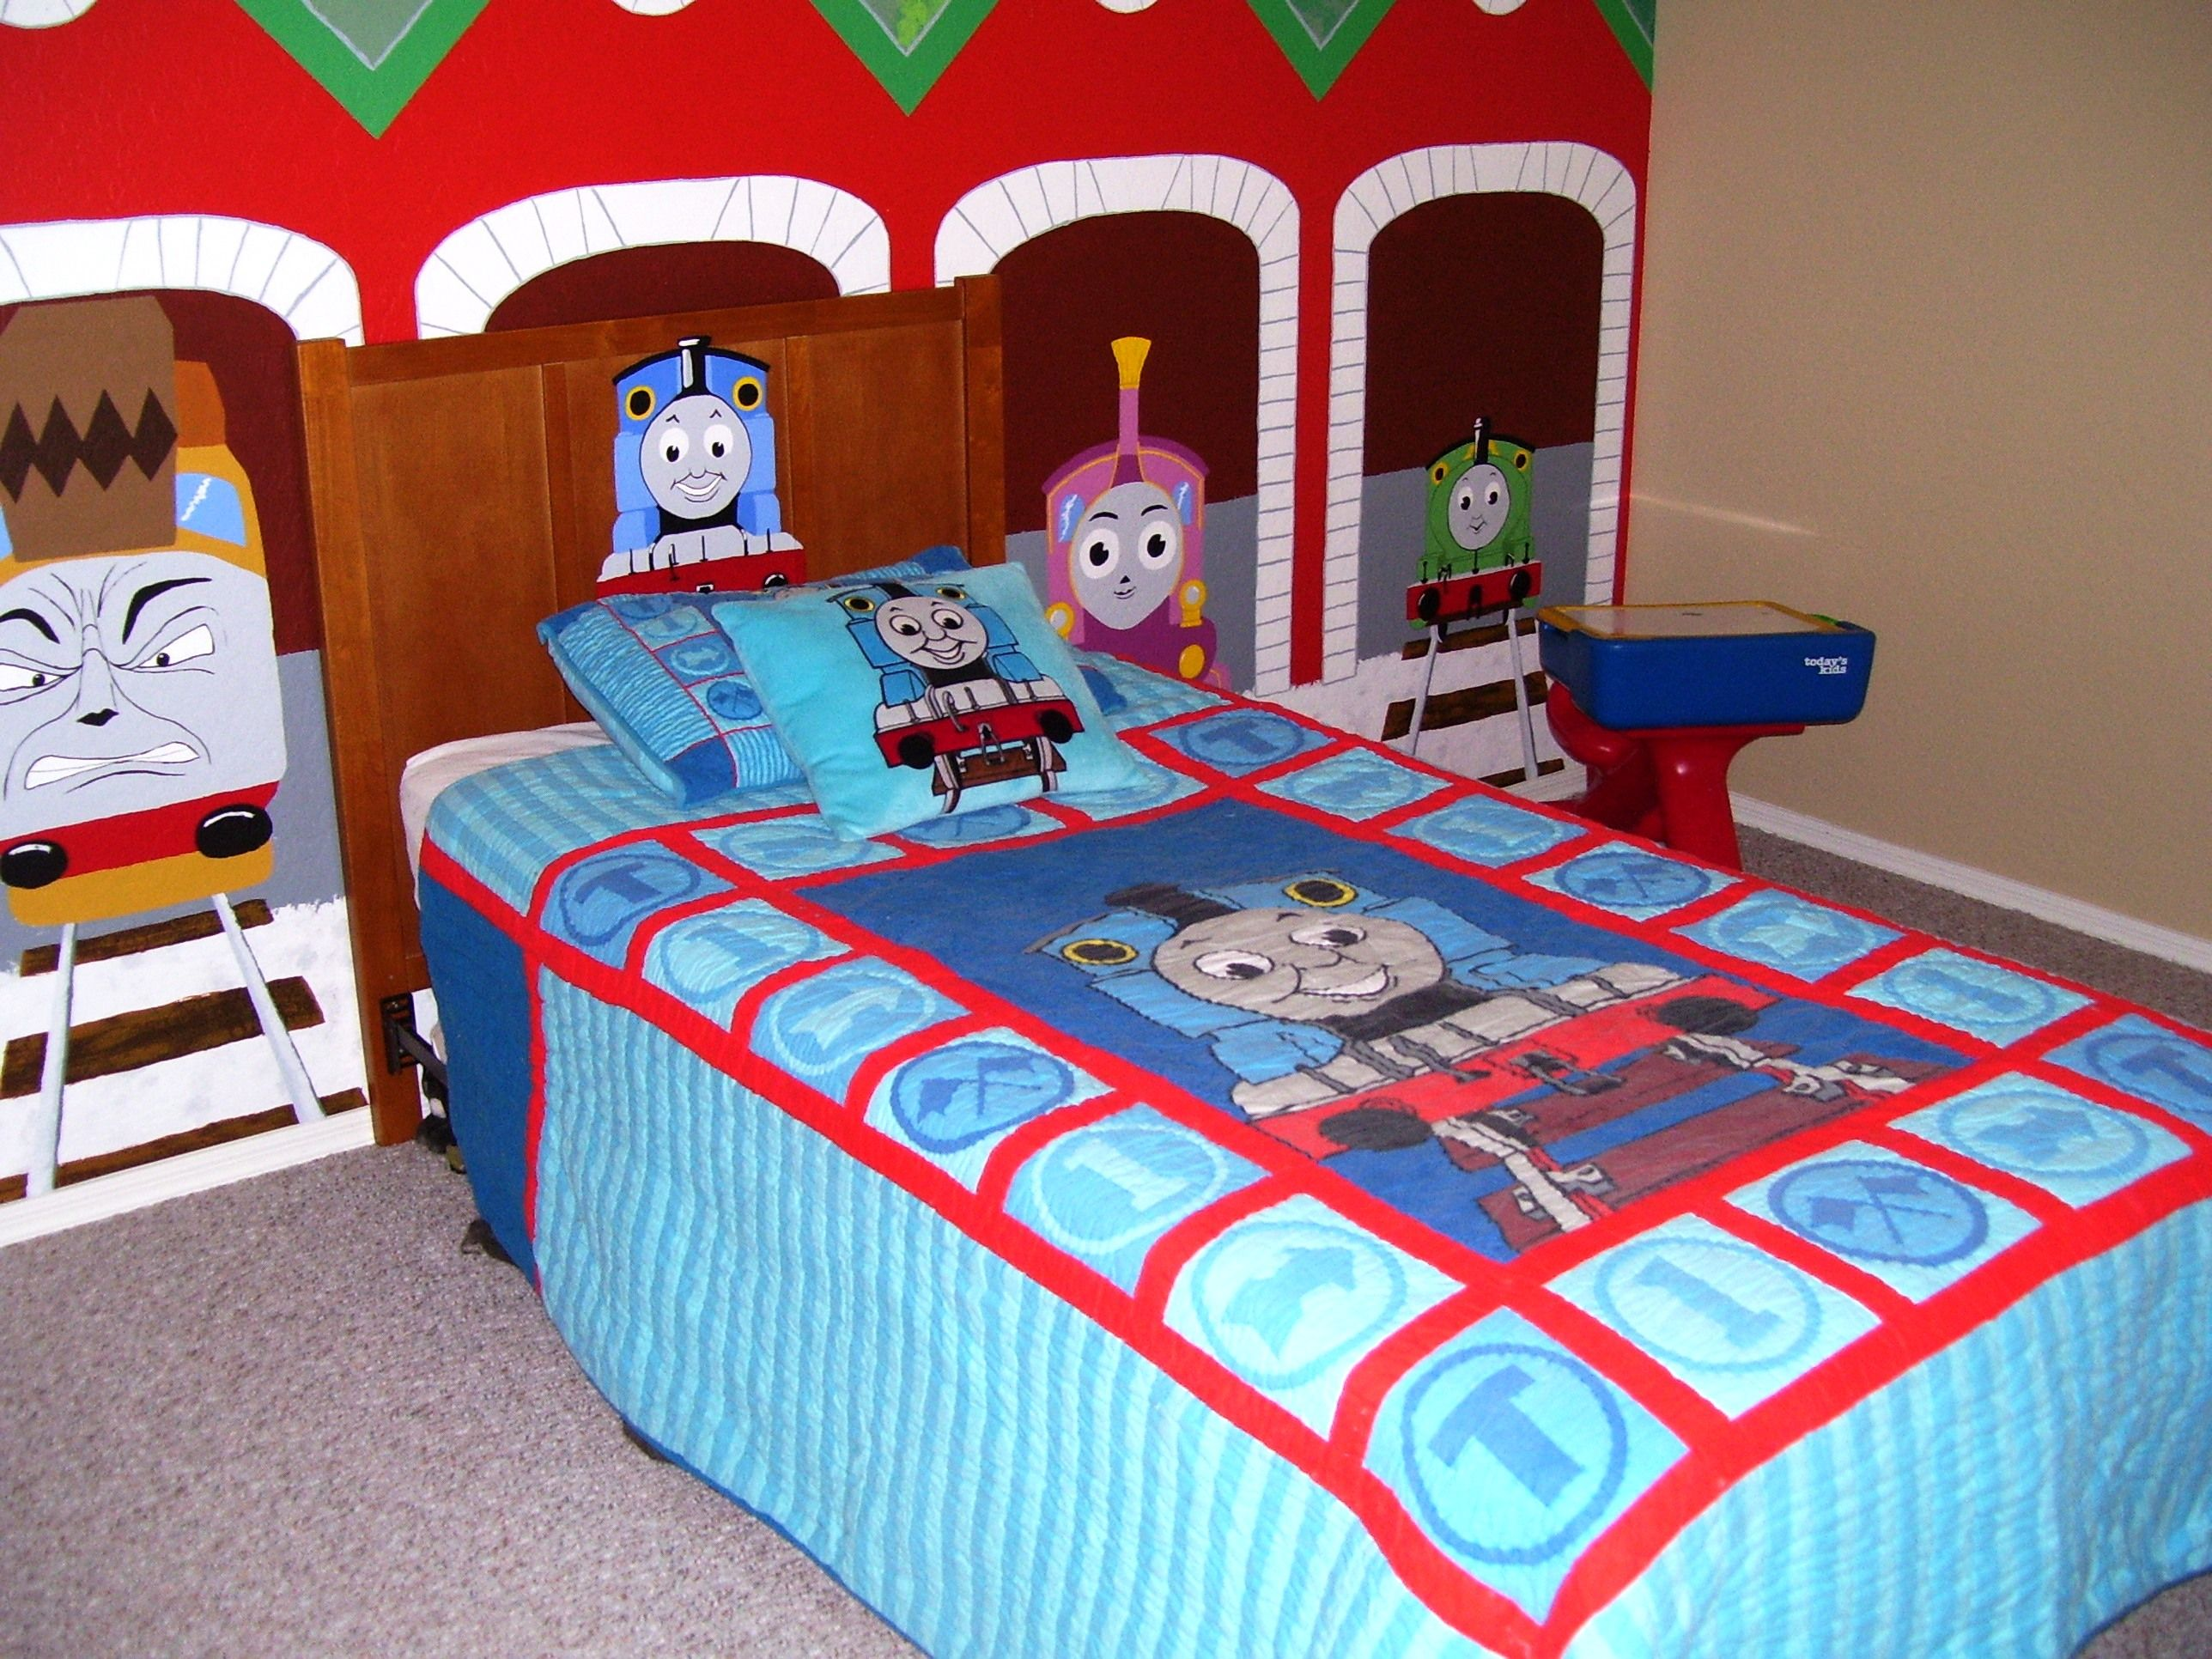 Thomas The Train Bedroom With Mural